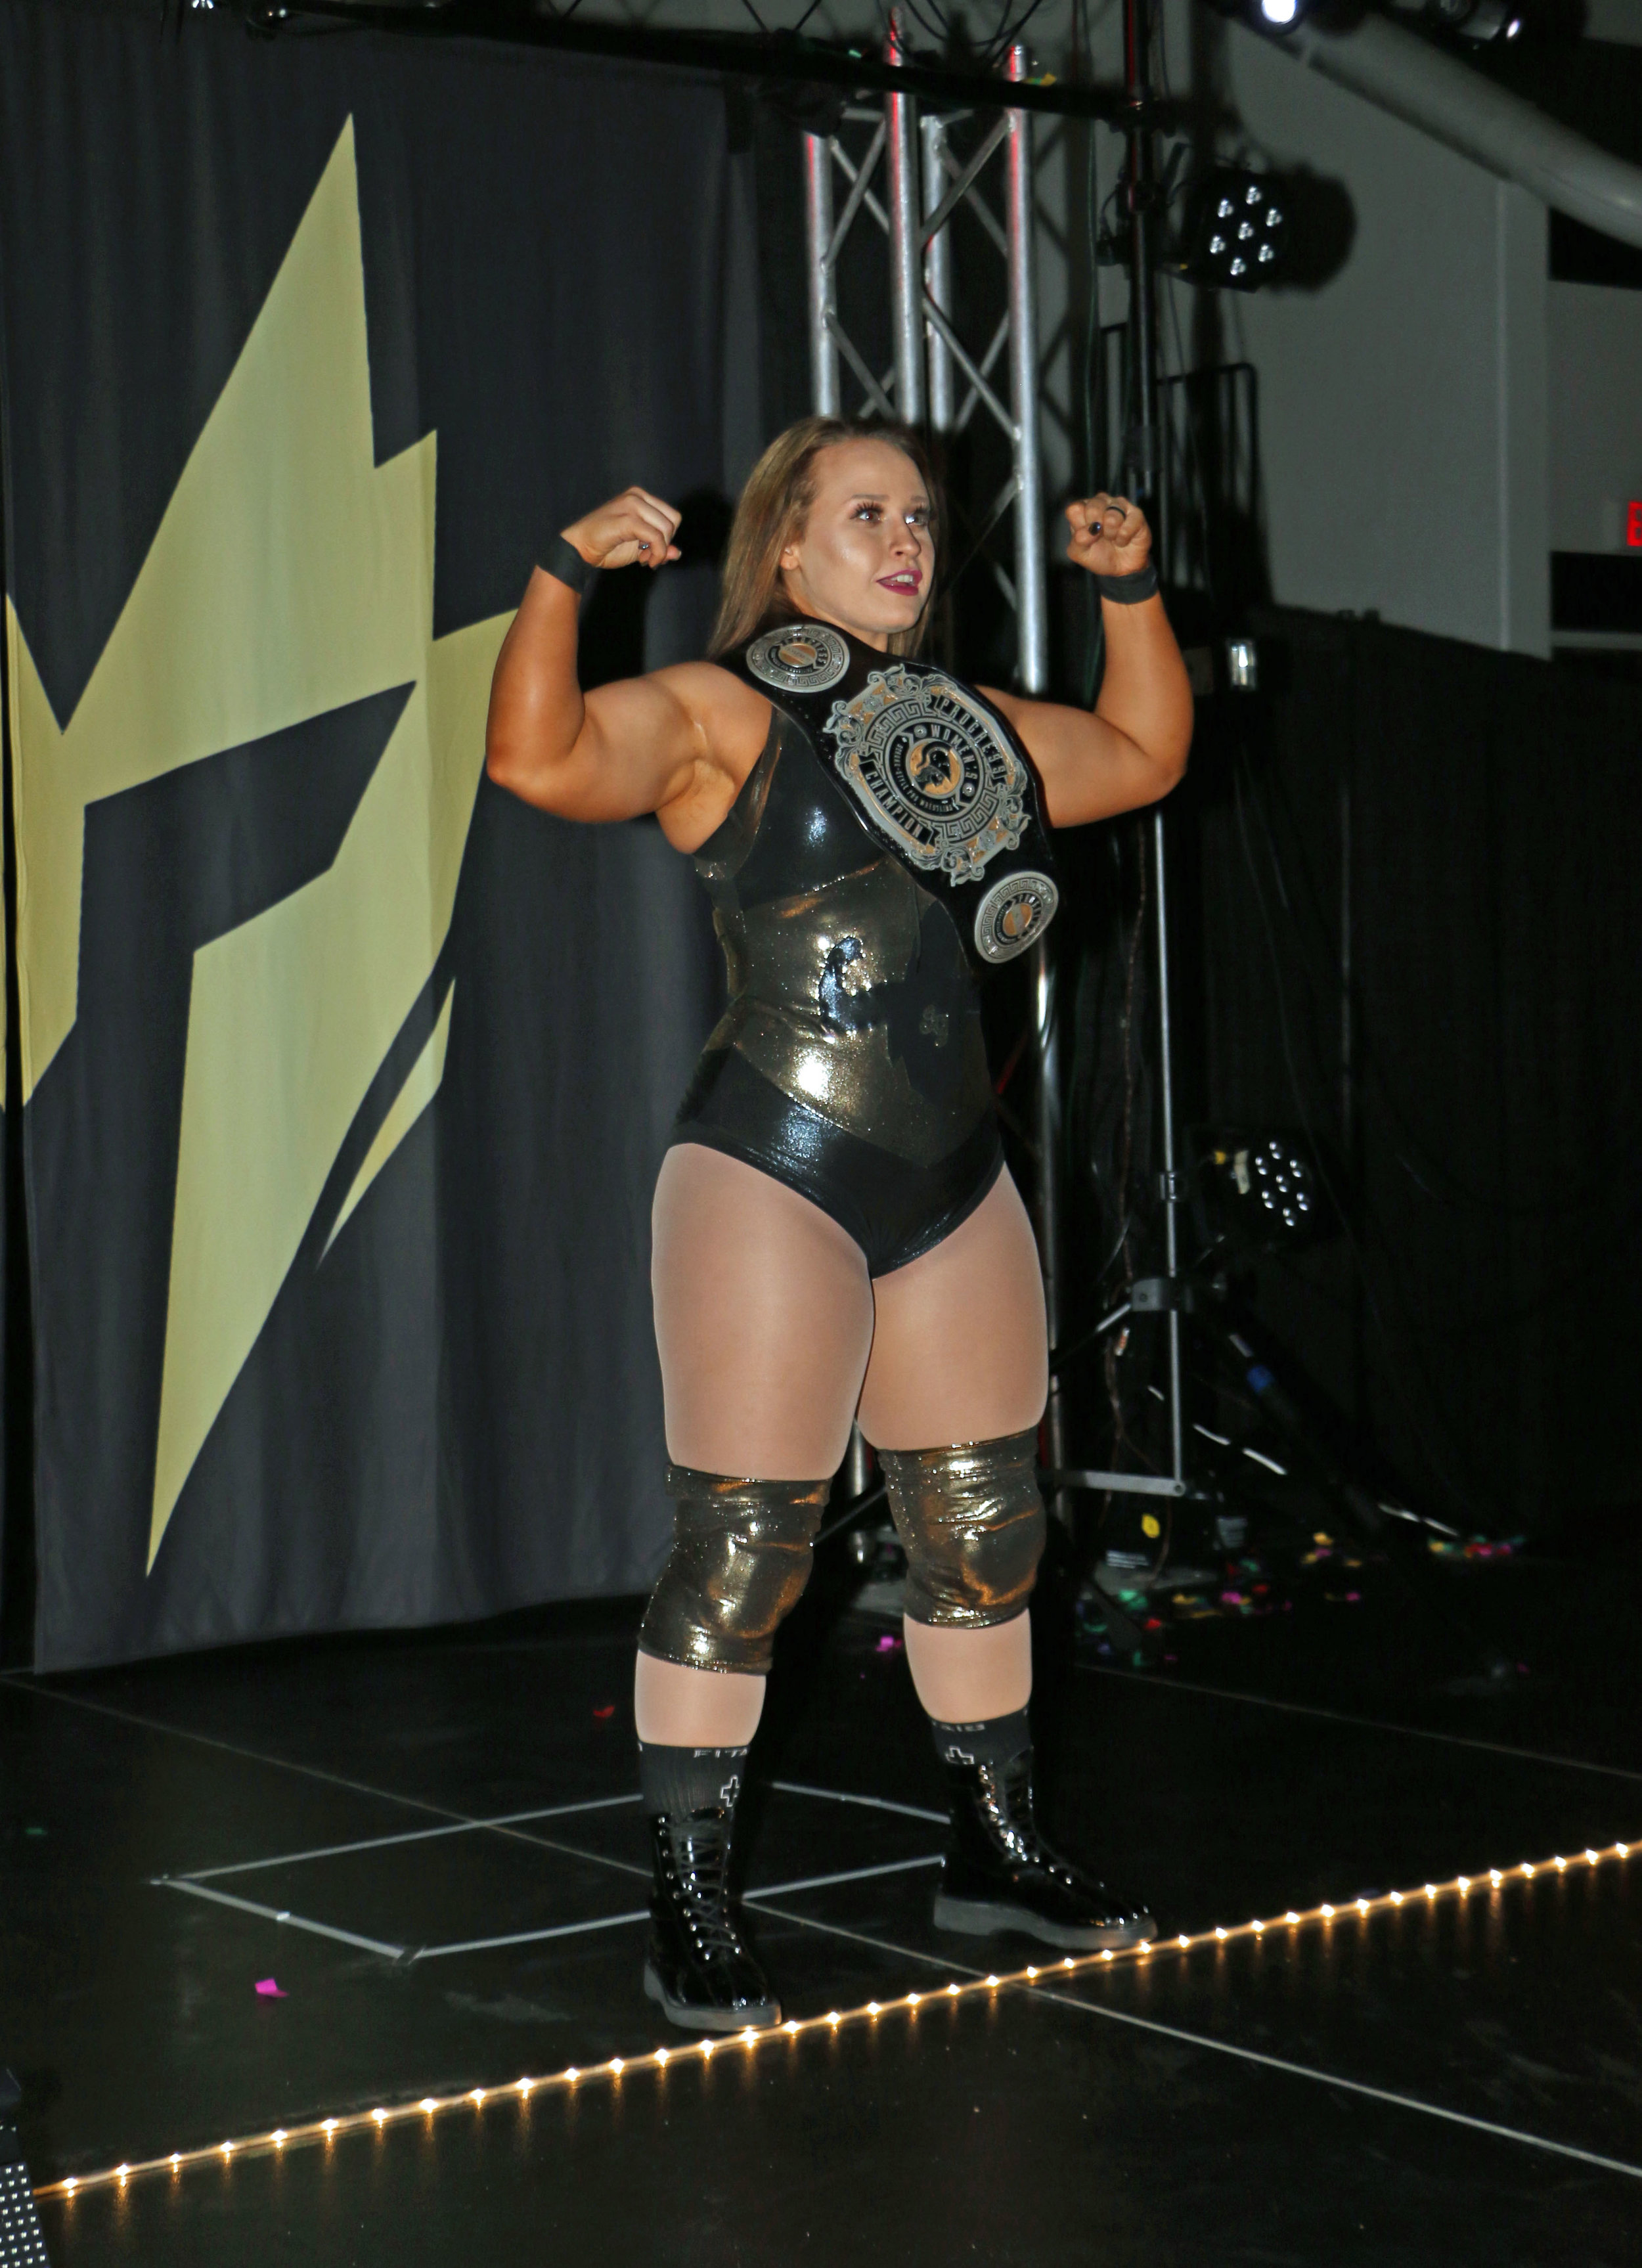 Jordynne Grace, pictured, faces Tessa Blanchard in match to crown Warrior Wrestling's first women's champion during Sunday's Warrior Wrestling 5 show in Chicago Heights, Ill.  (Photo by Mike Pankow)